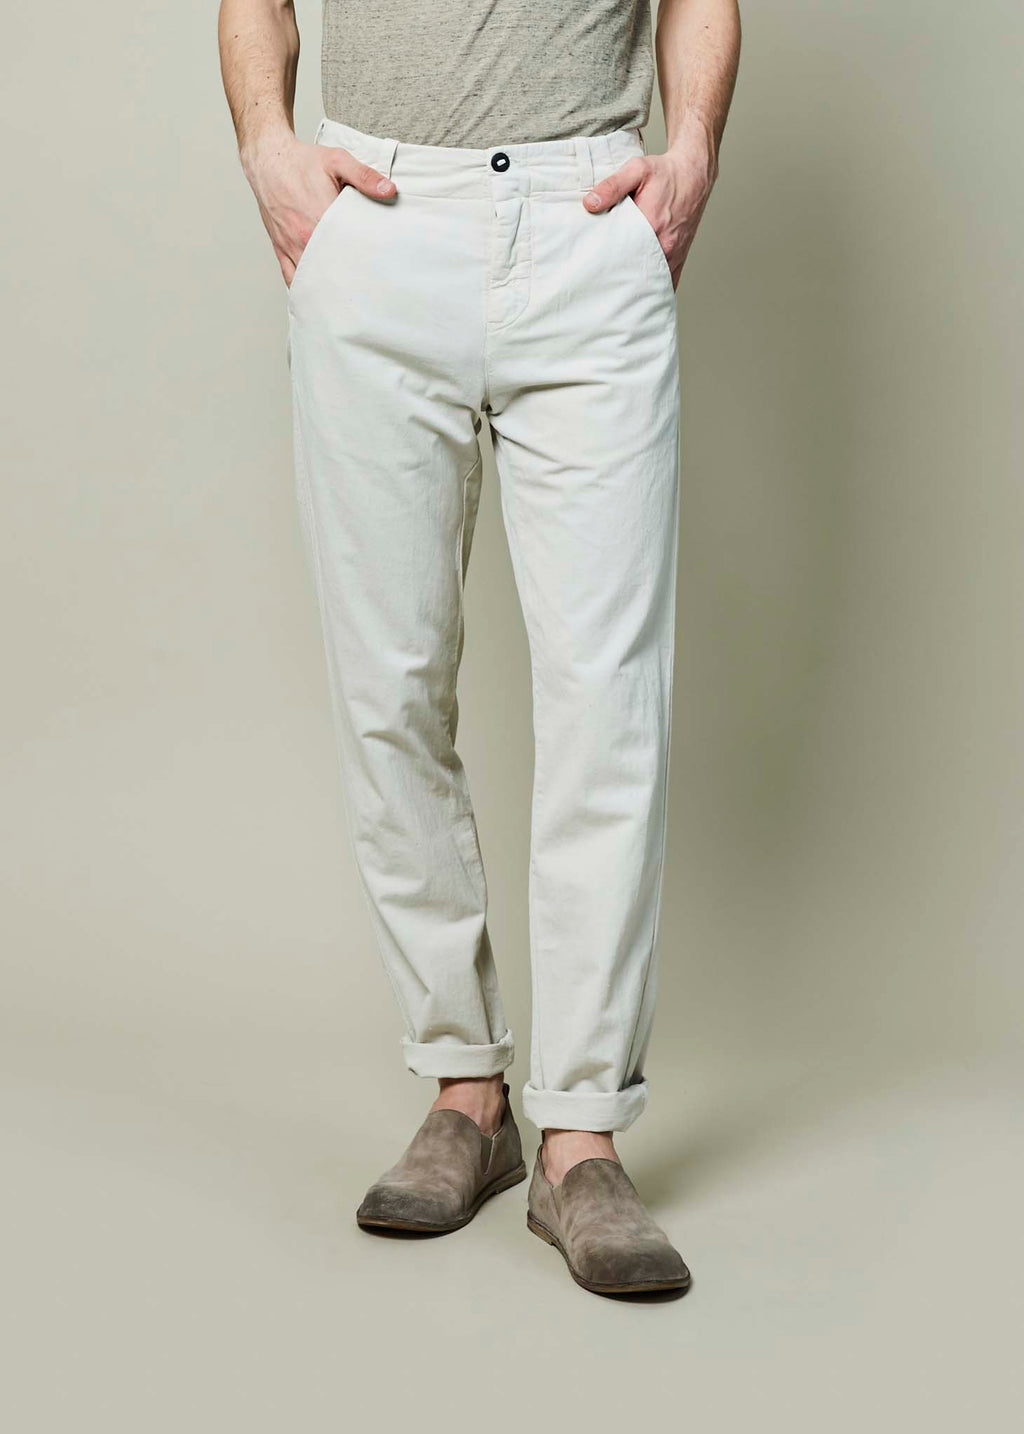 Hannes Roether Men's Cotton Track Pant